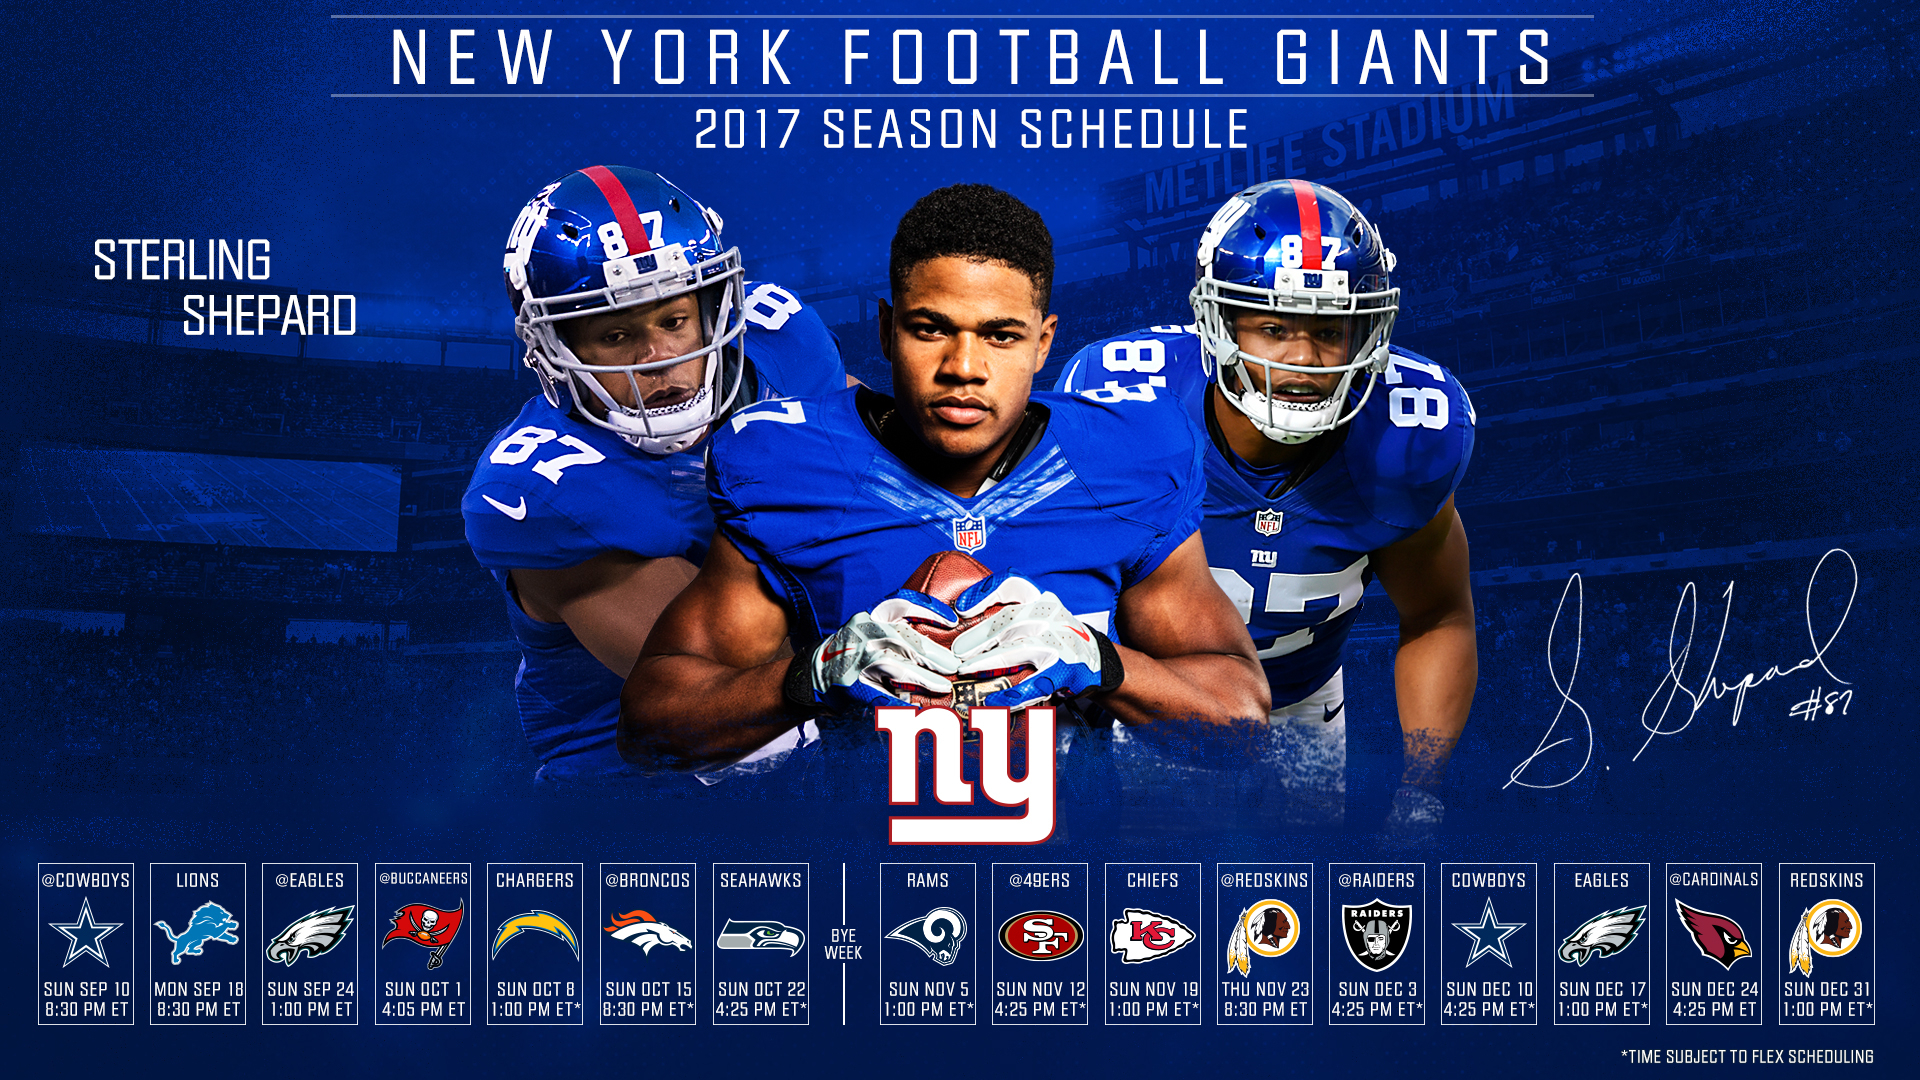 download the giants 2017 schedule wallpaper